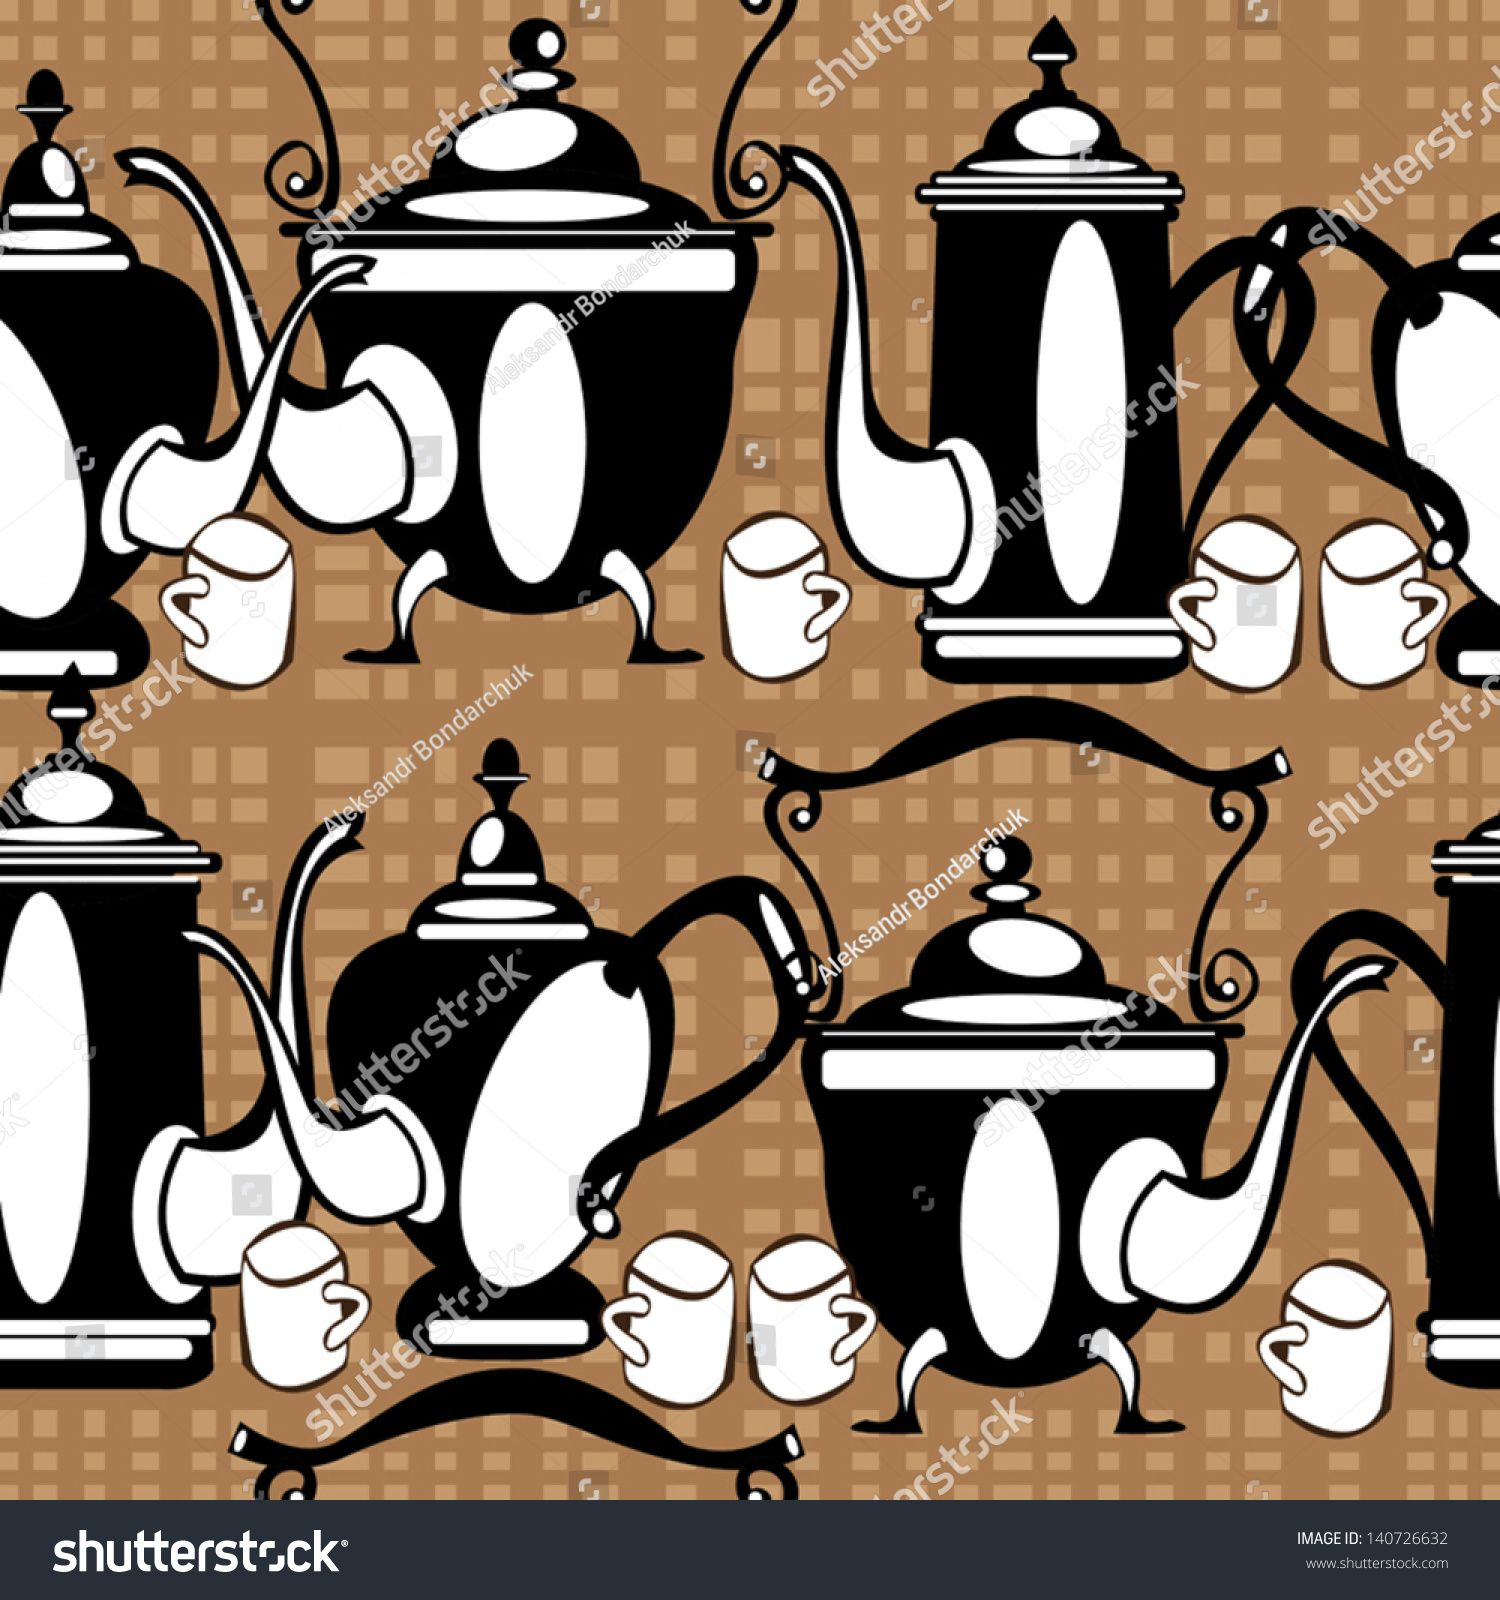 seamless pattern teapot on brown background #Sponsored , #paid, #pattern#seamless#teapot#background